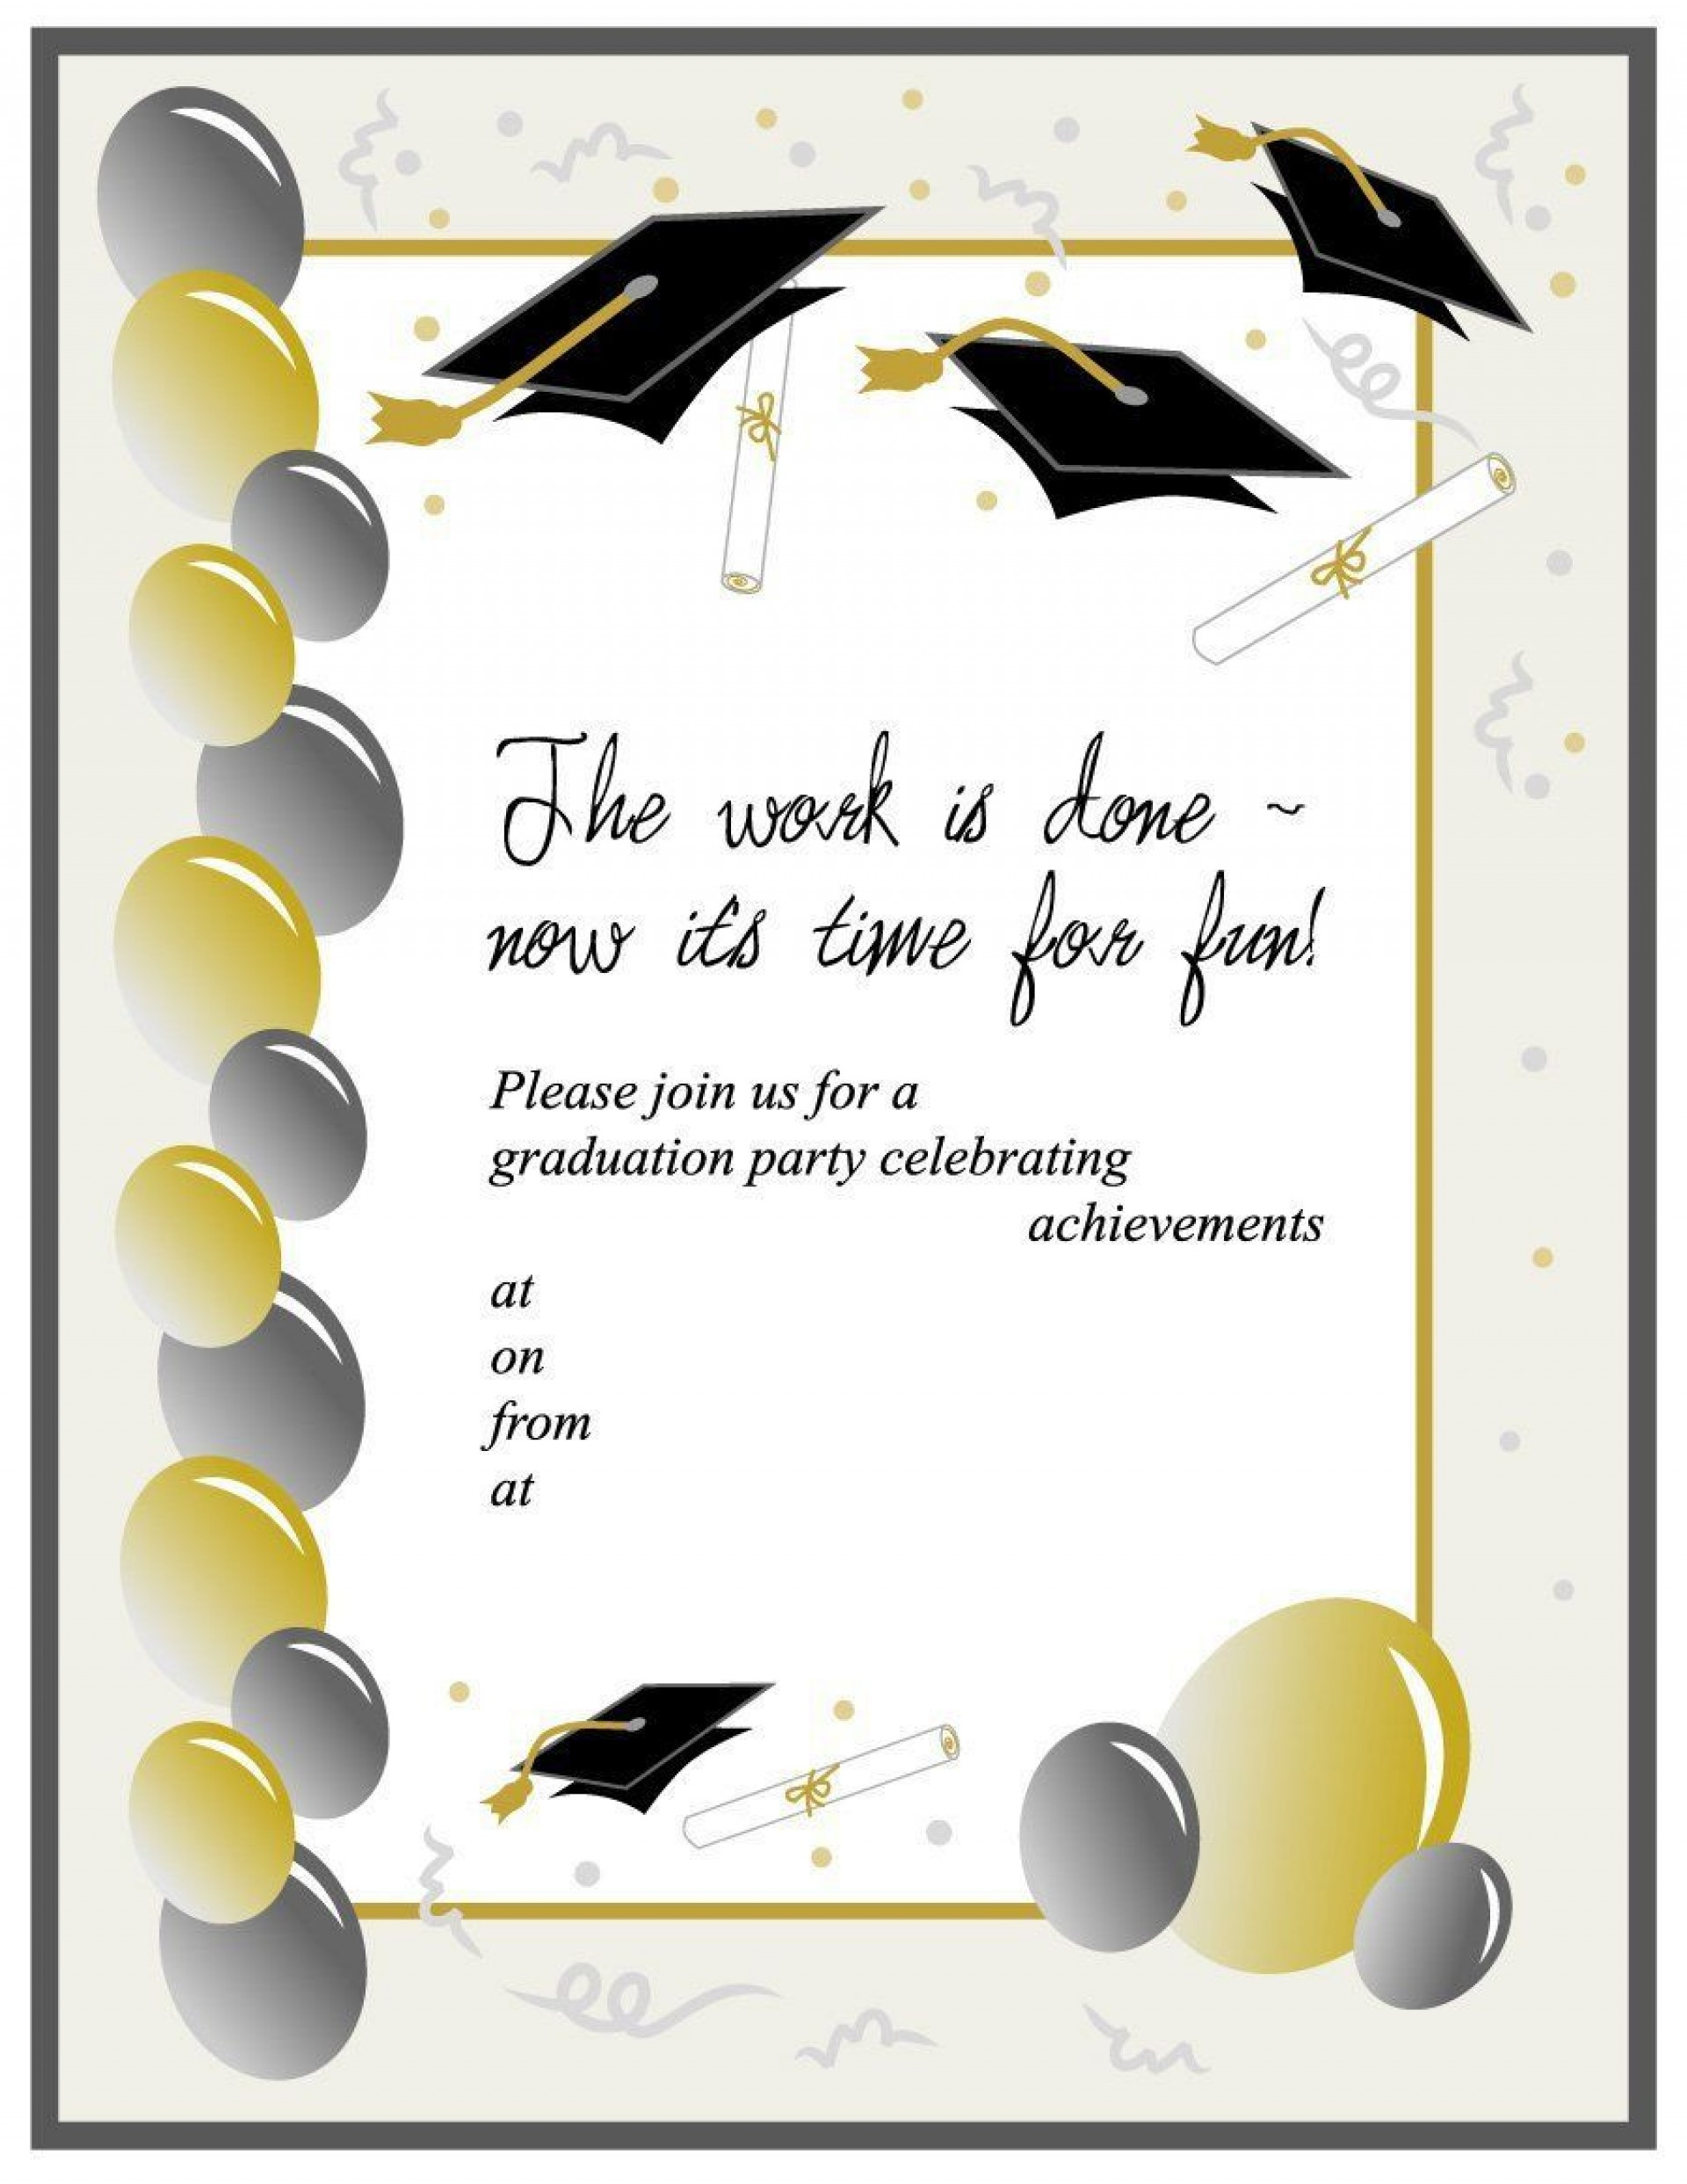 005 Stirring Microsoft Word Graduation Party Invitation Template High Resolution 1920